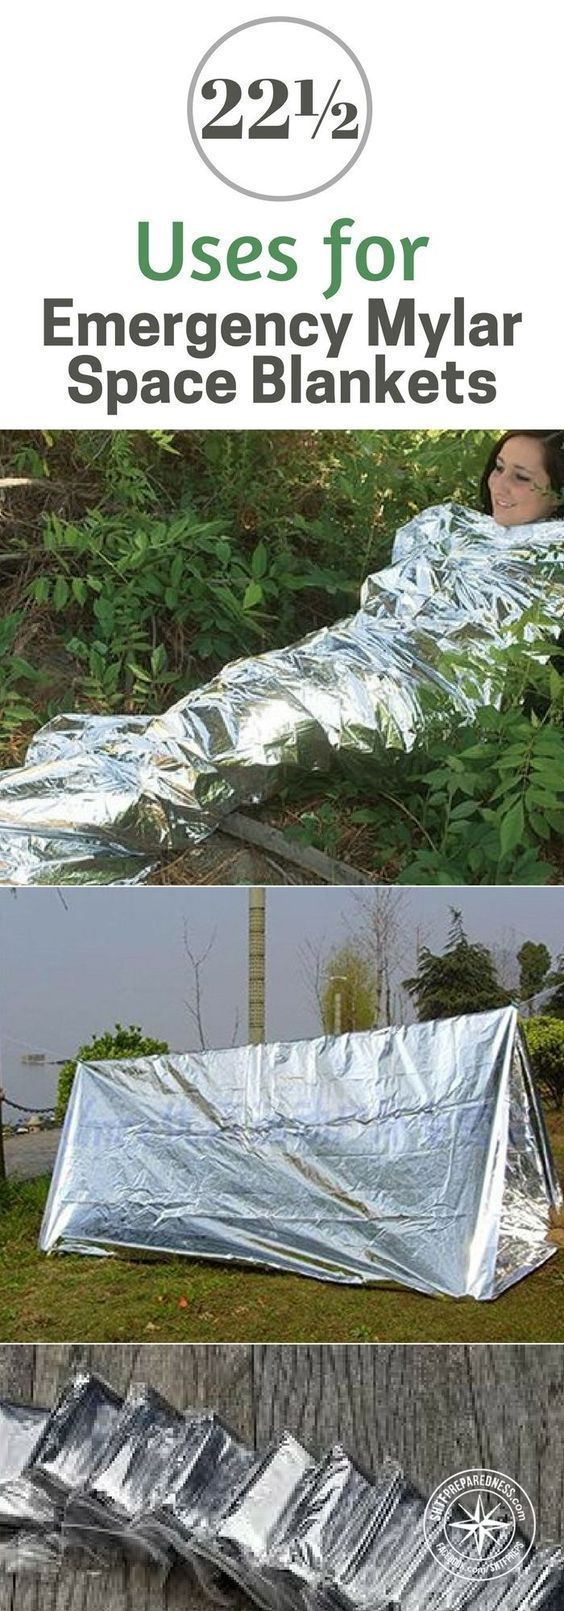 22½ Amazing Uses for Emergency Mylar Space Blankets - We all have a Mylar blanket in our kit somewhere. See 22½ alternative uses for mylar blankets. Can you add any uses to the list? #lifehacks #preparedness #emergencyuses